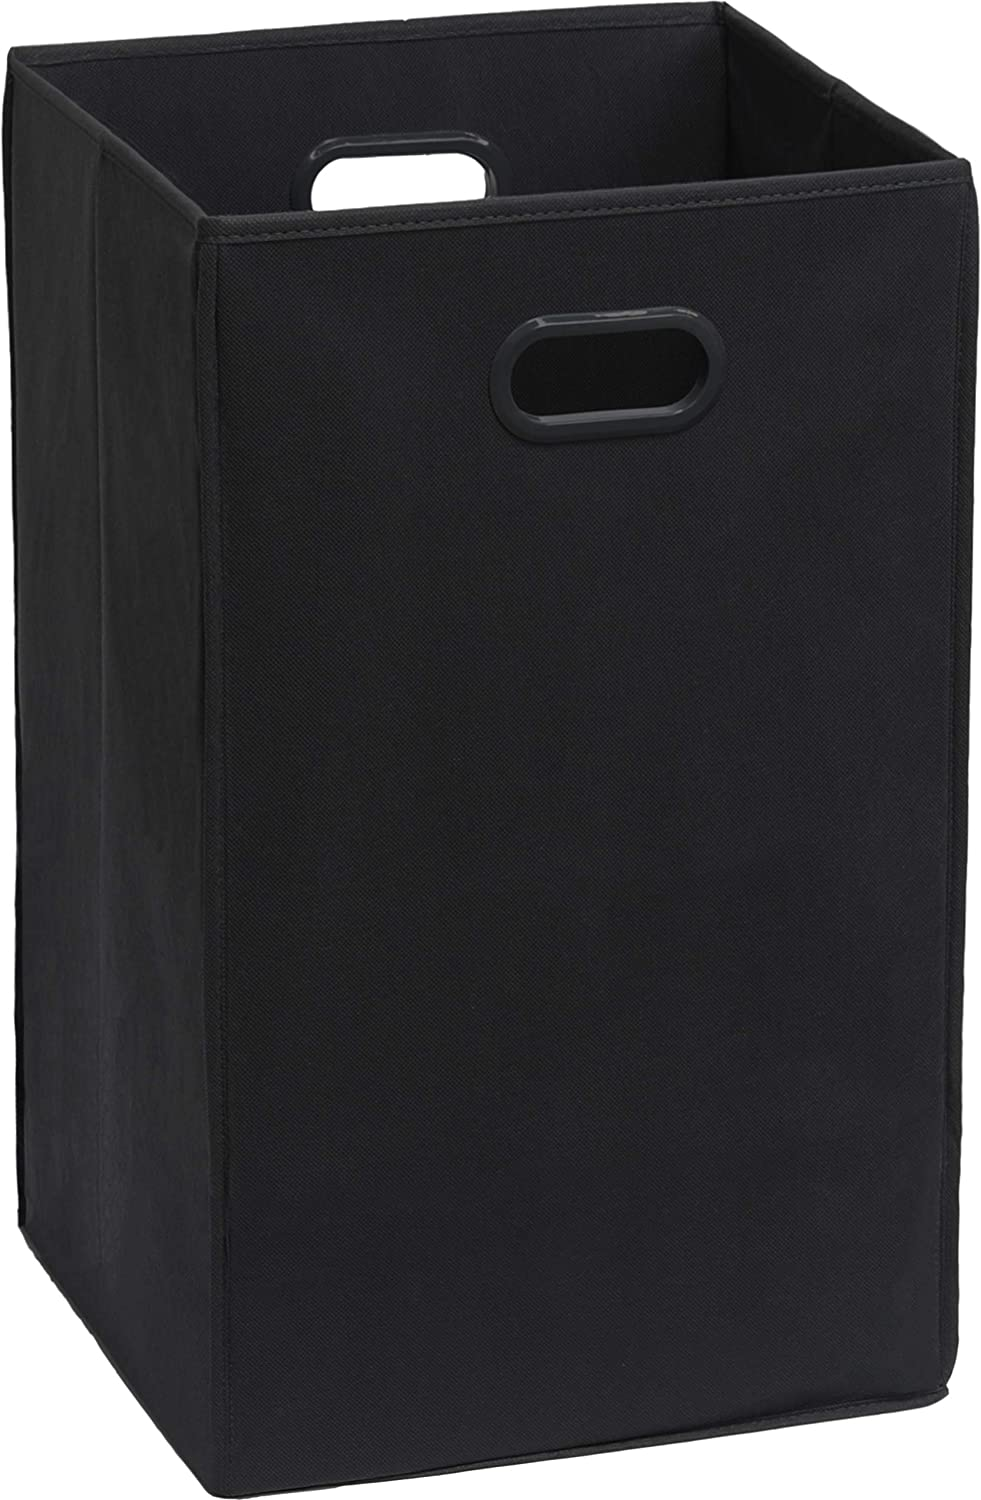 Simple Houseware Foldable Closet Laundry Hamper Basket, Black